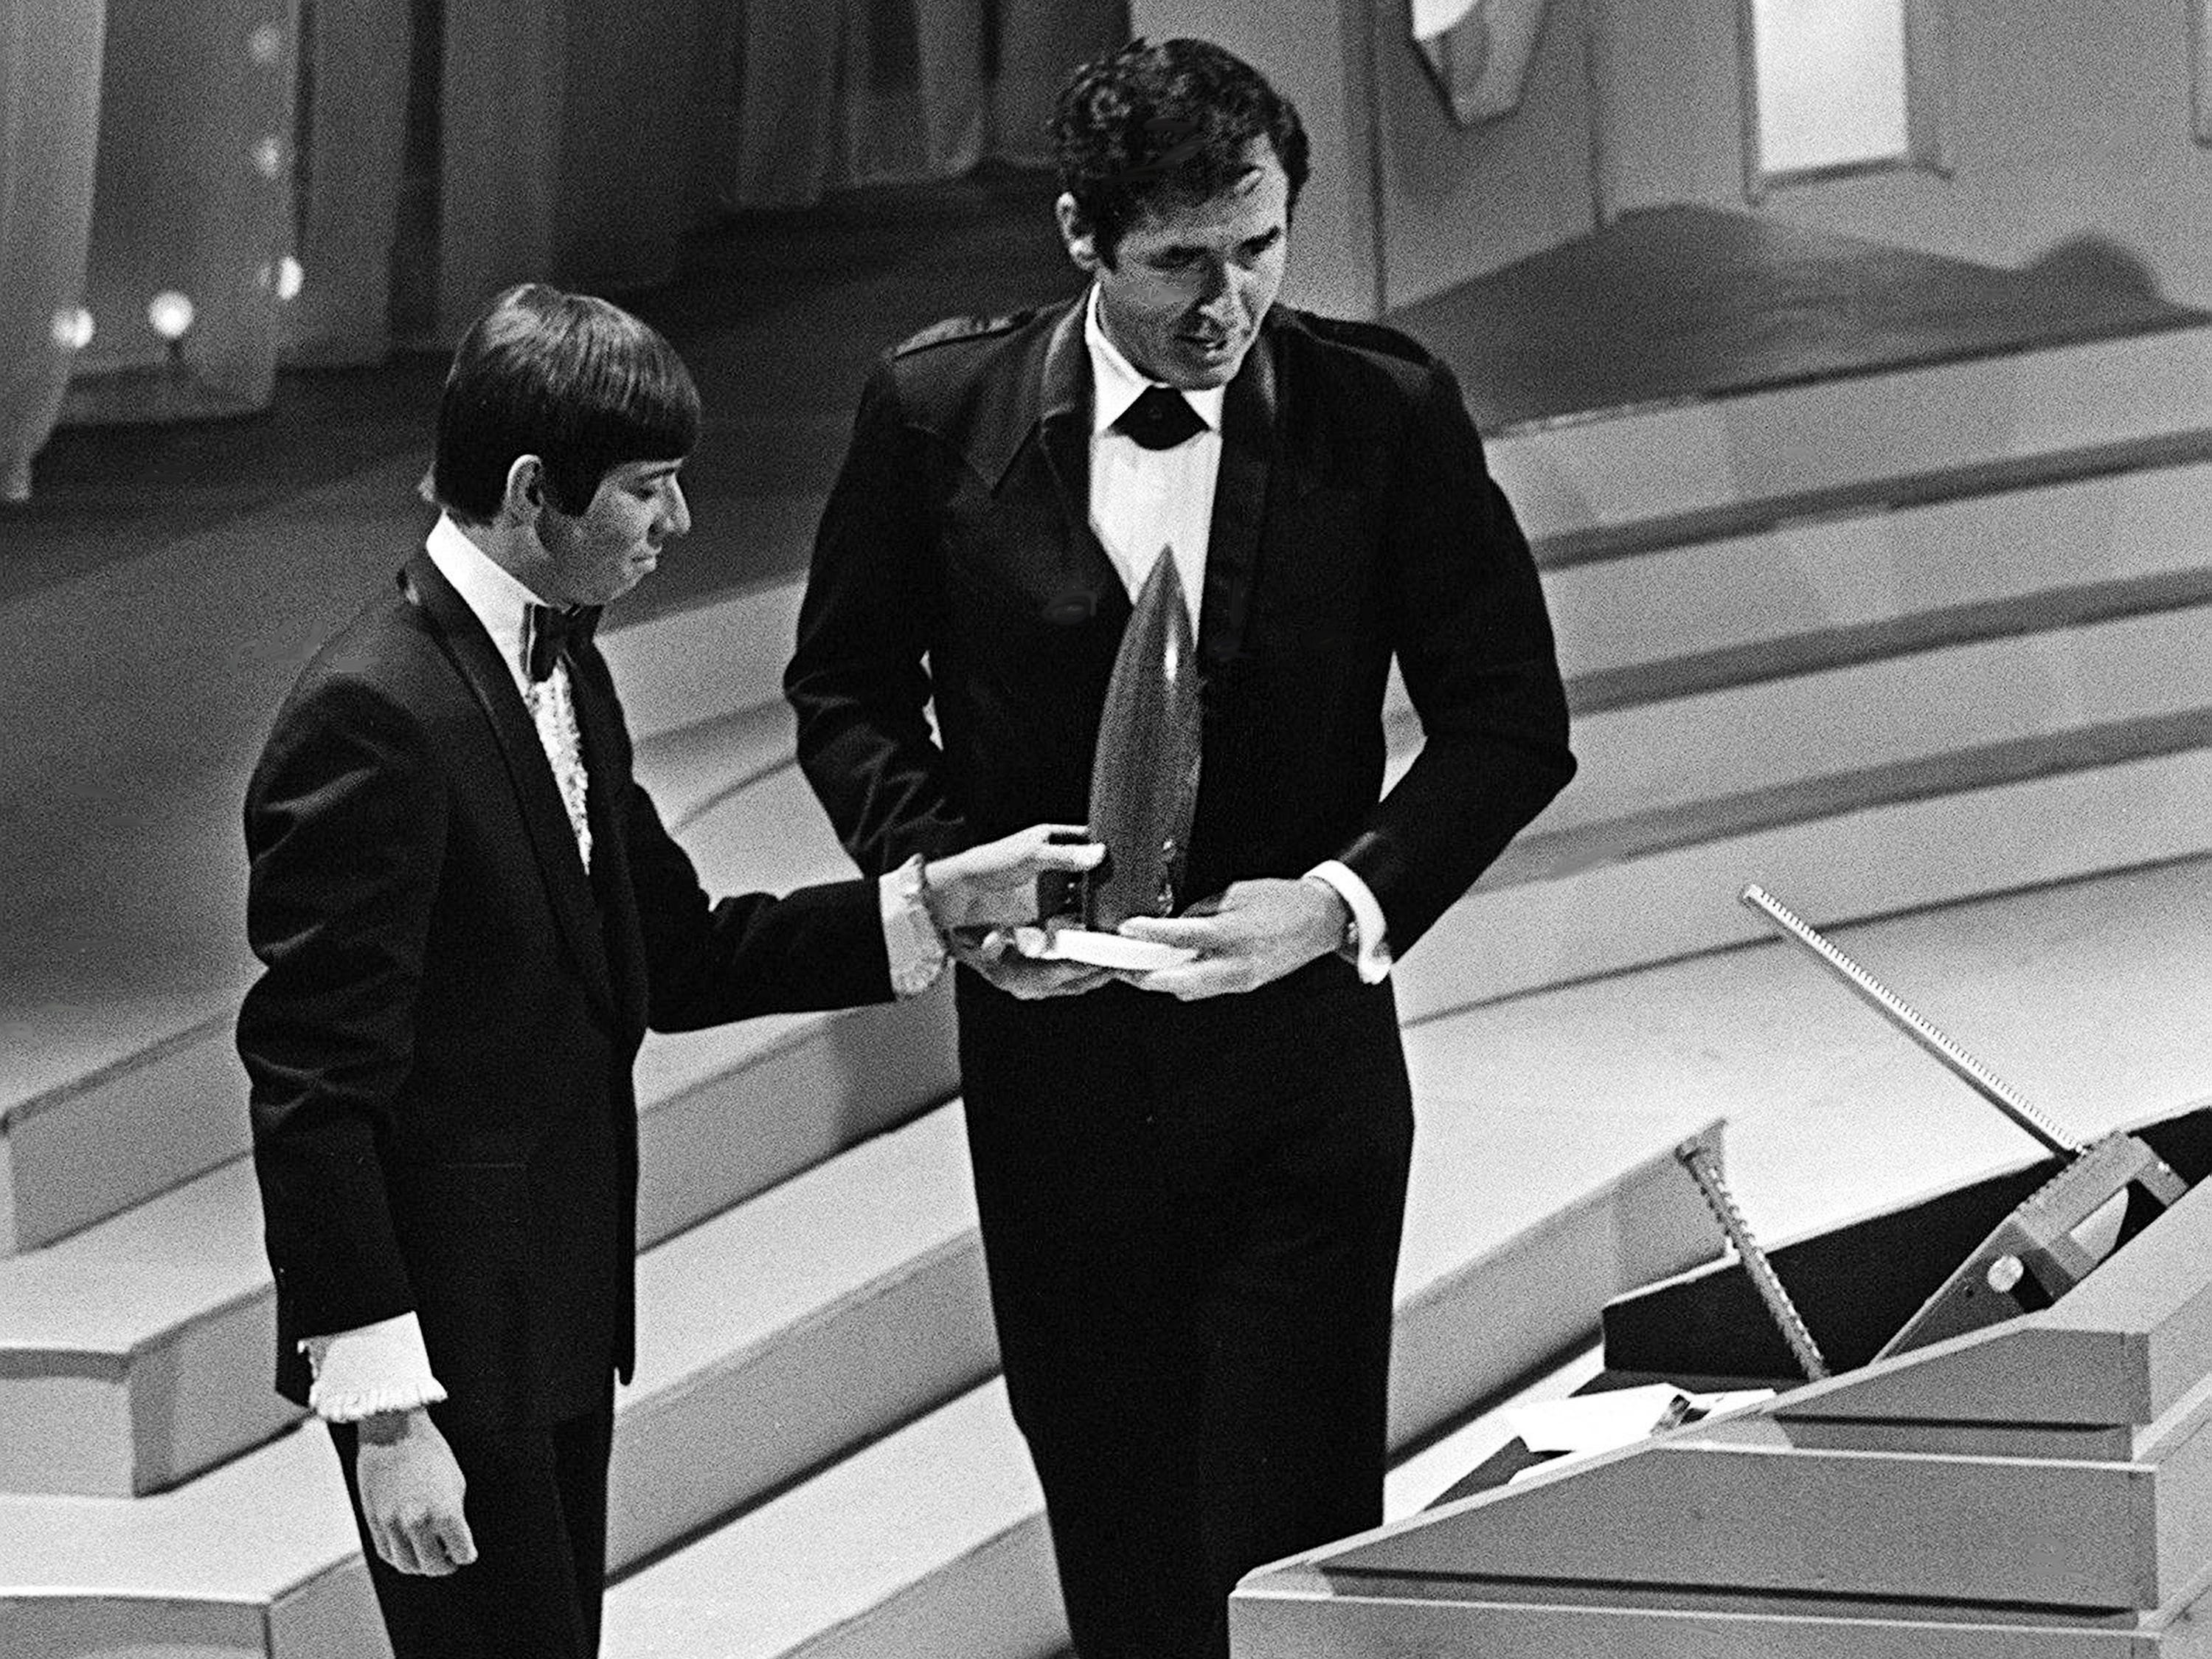 Sheb Wooley, also known as Ben Colder, right, accepts his Comedian of the Year award from presenter Bobby Goldsboro during the second annual CMA Awards show at the Ryman Auditorium on Oct. 18, 1968.